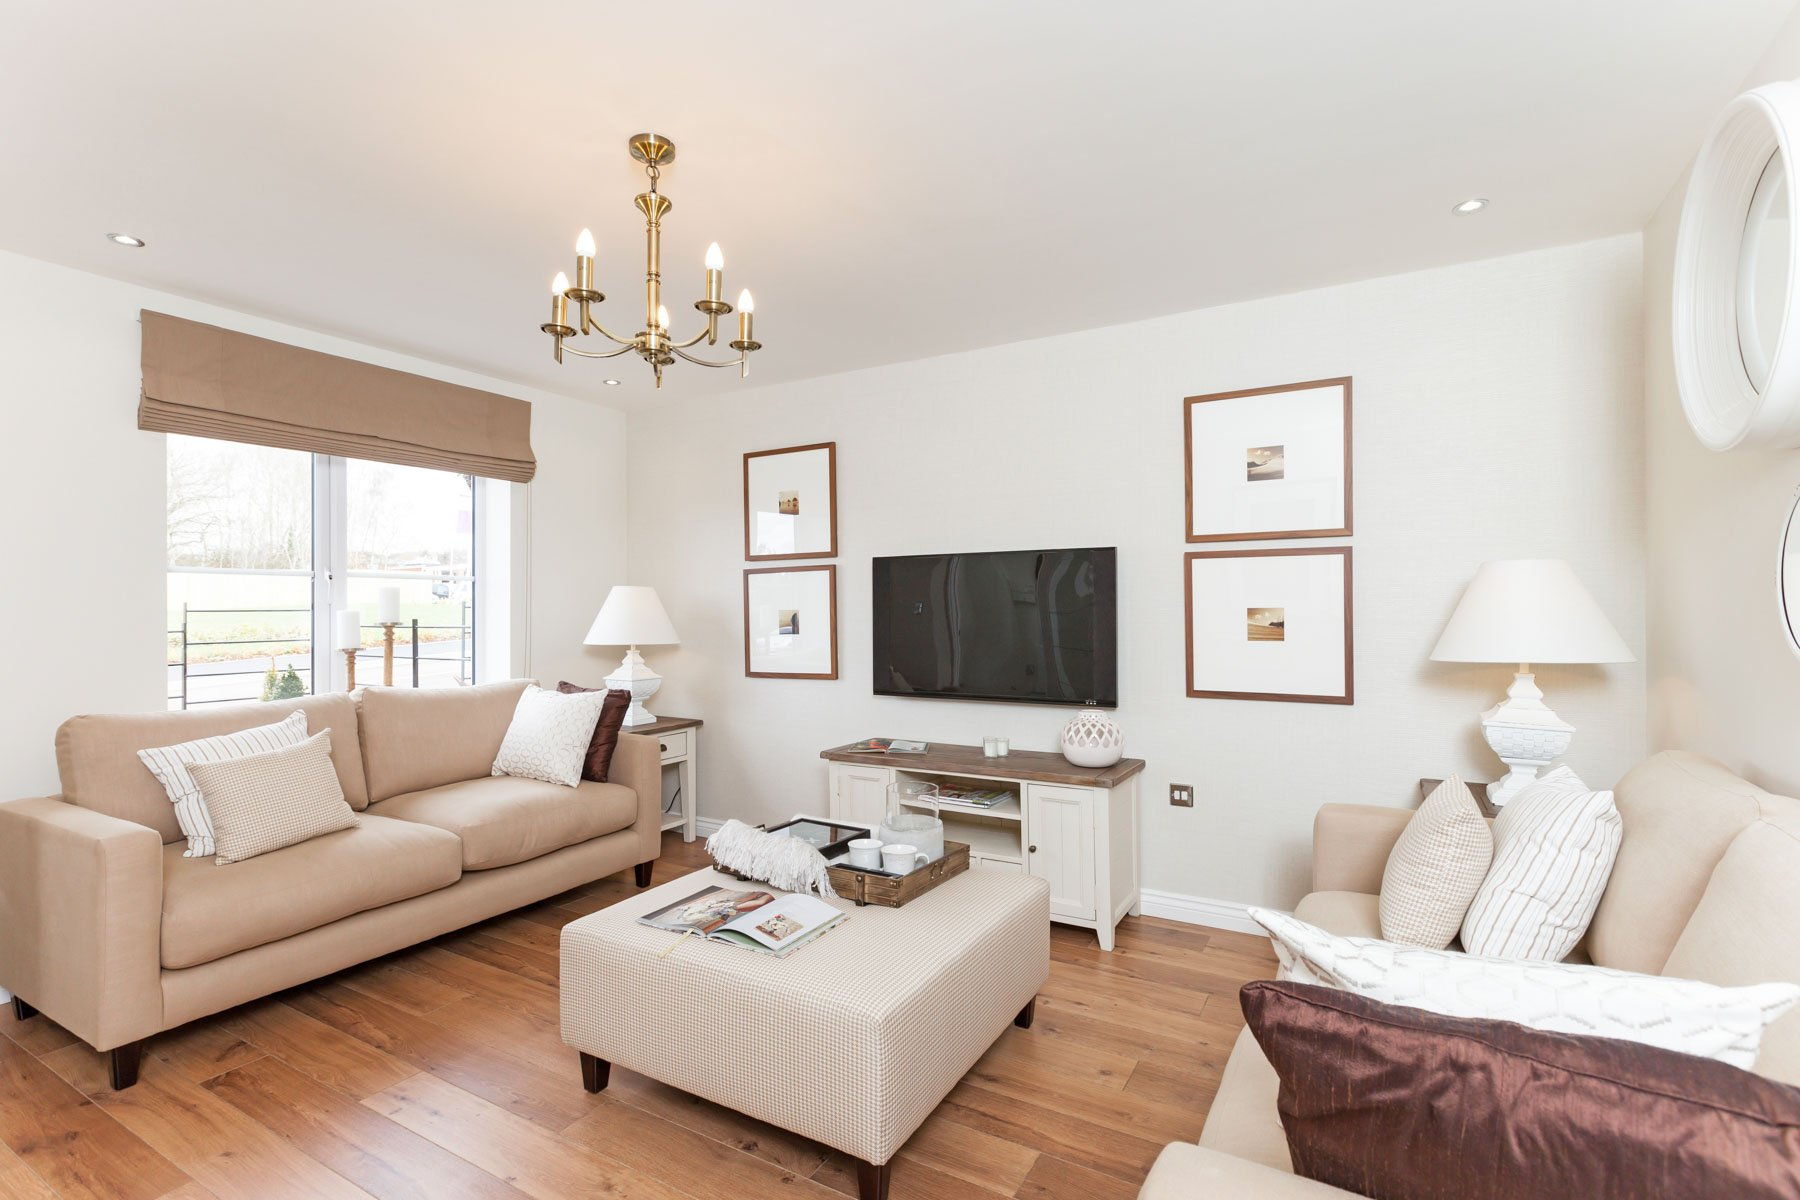 TW Exeter - Chy An Dowr - Gosford example living room